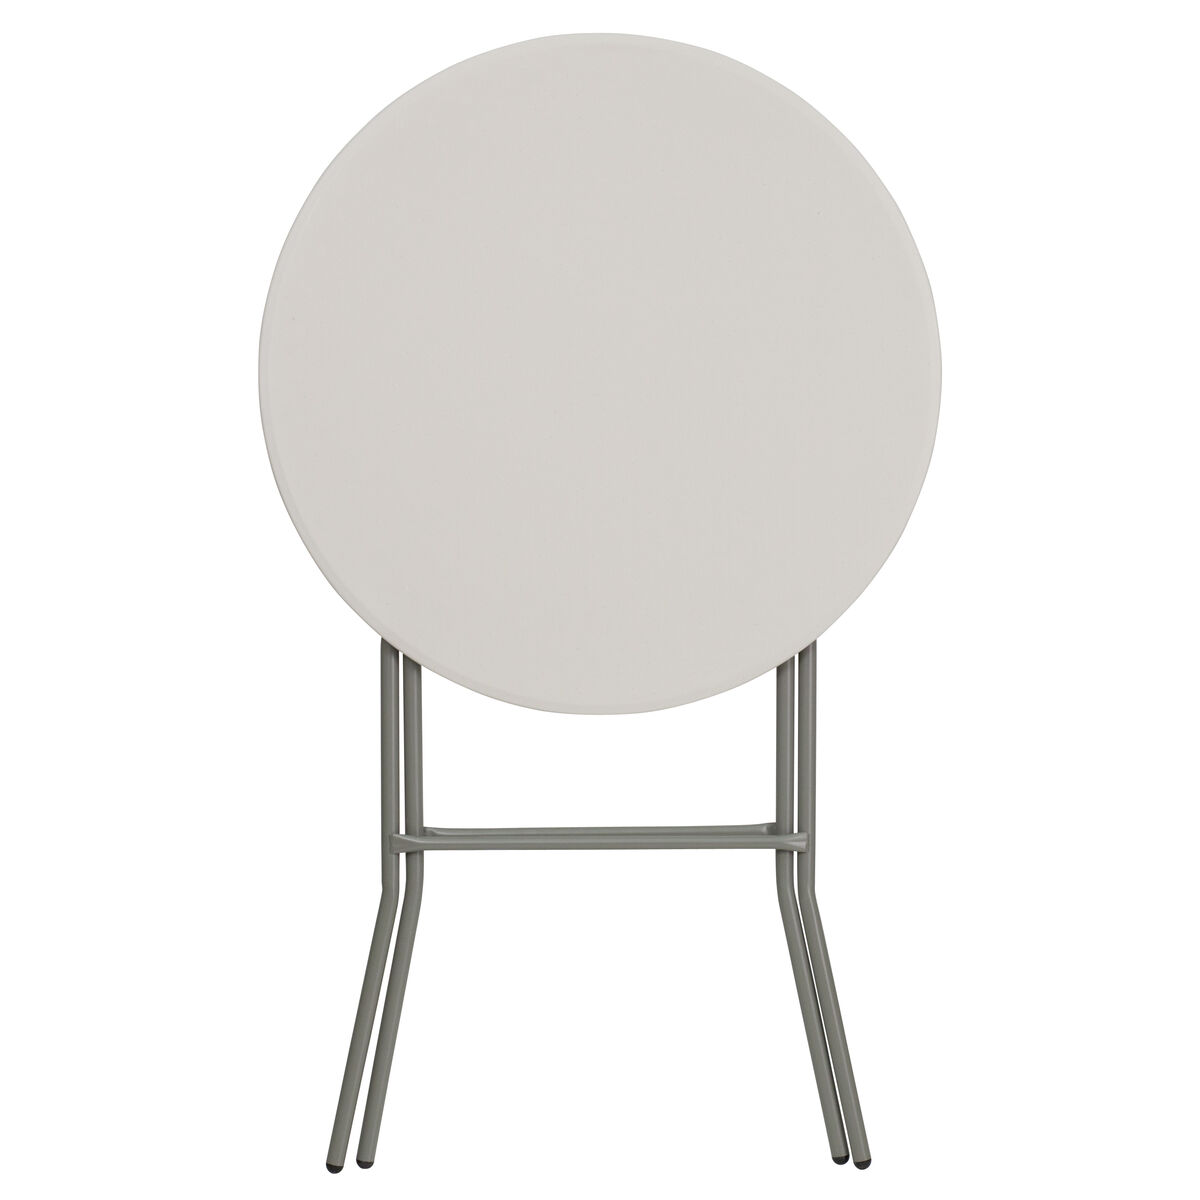 Our 32 Round Granite White Plastic Bar Height Folding Table Is On Now